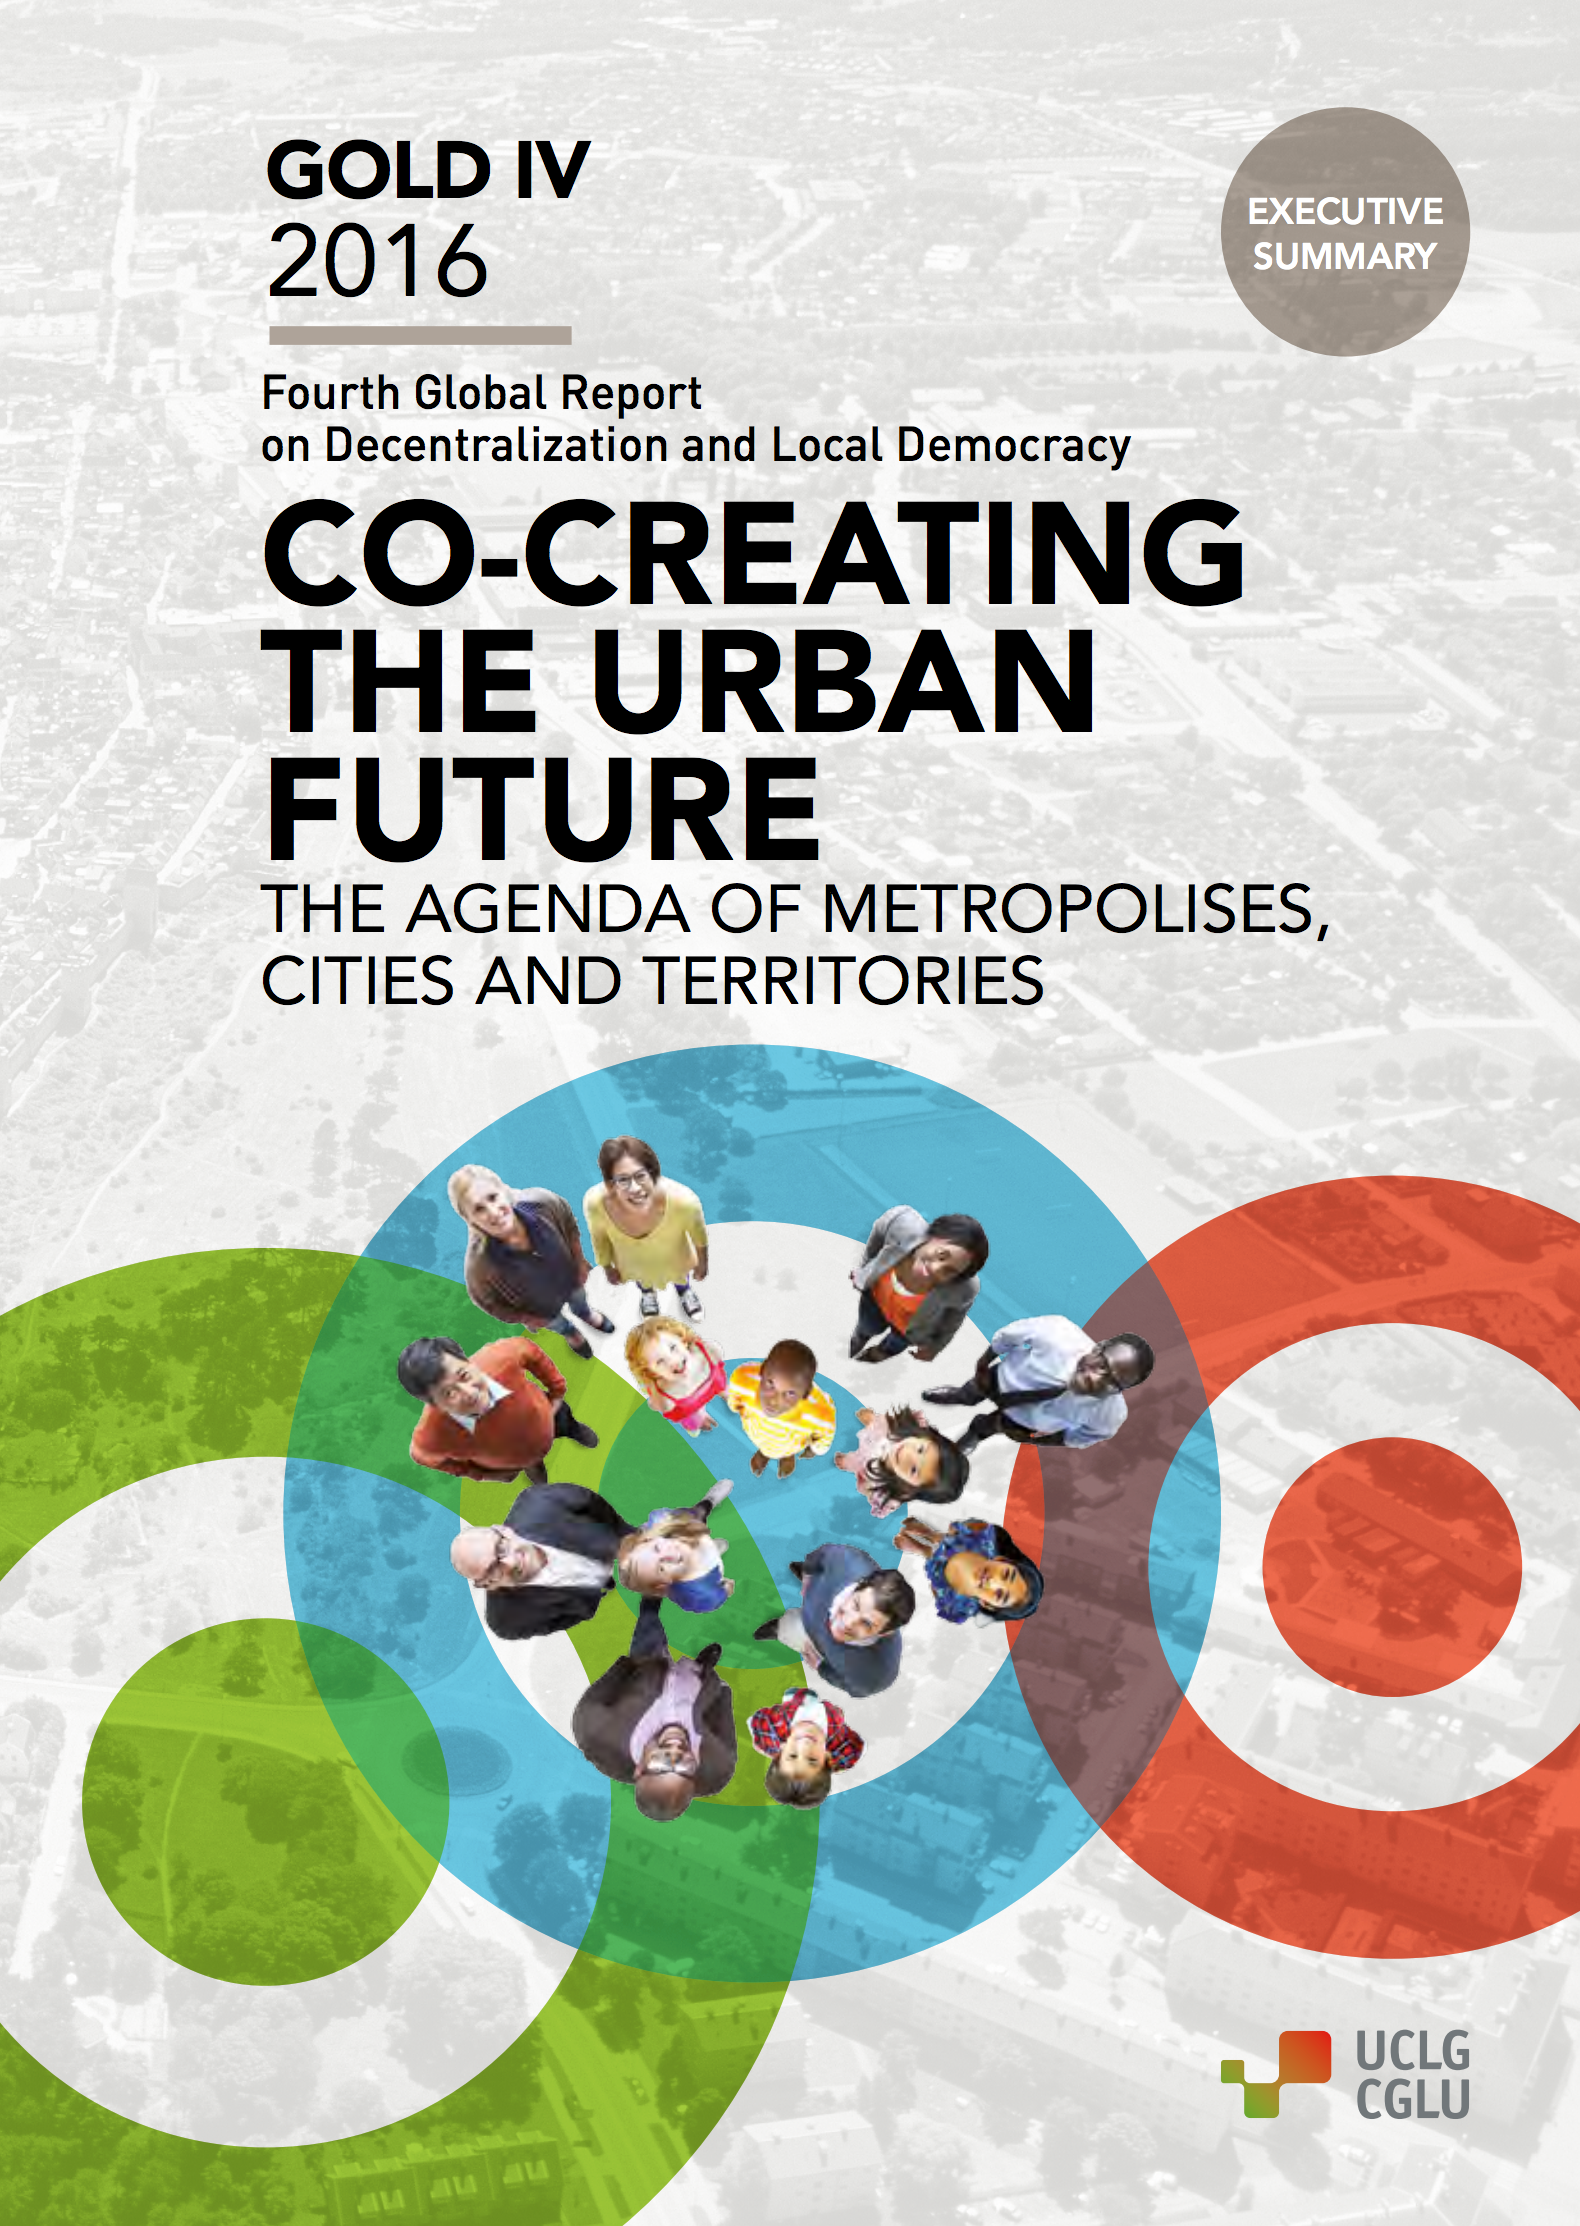 GOLD IV: Co-creating the urban future - Executive Summary